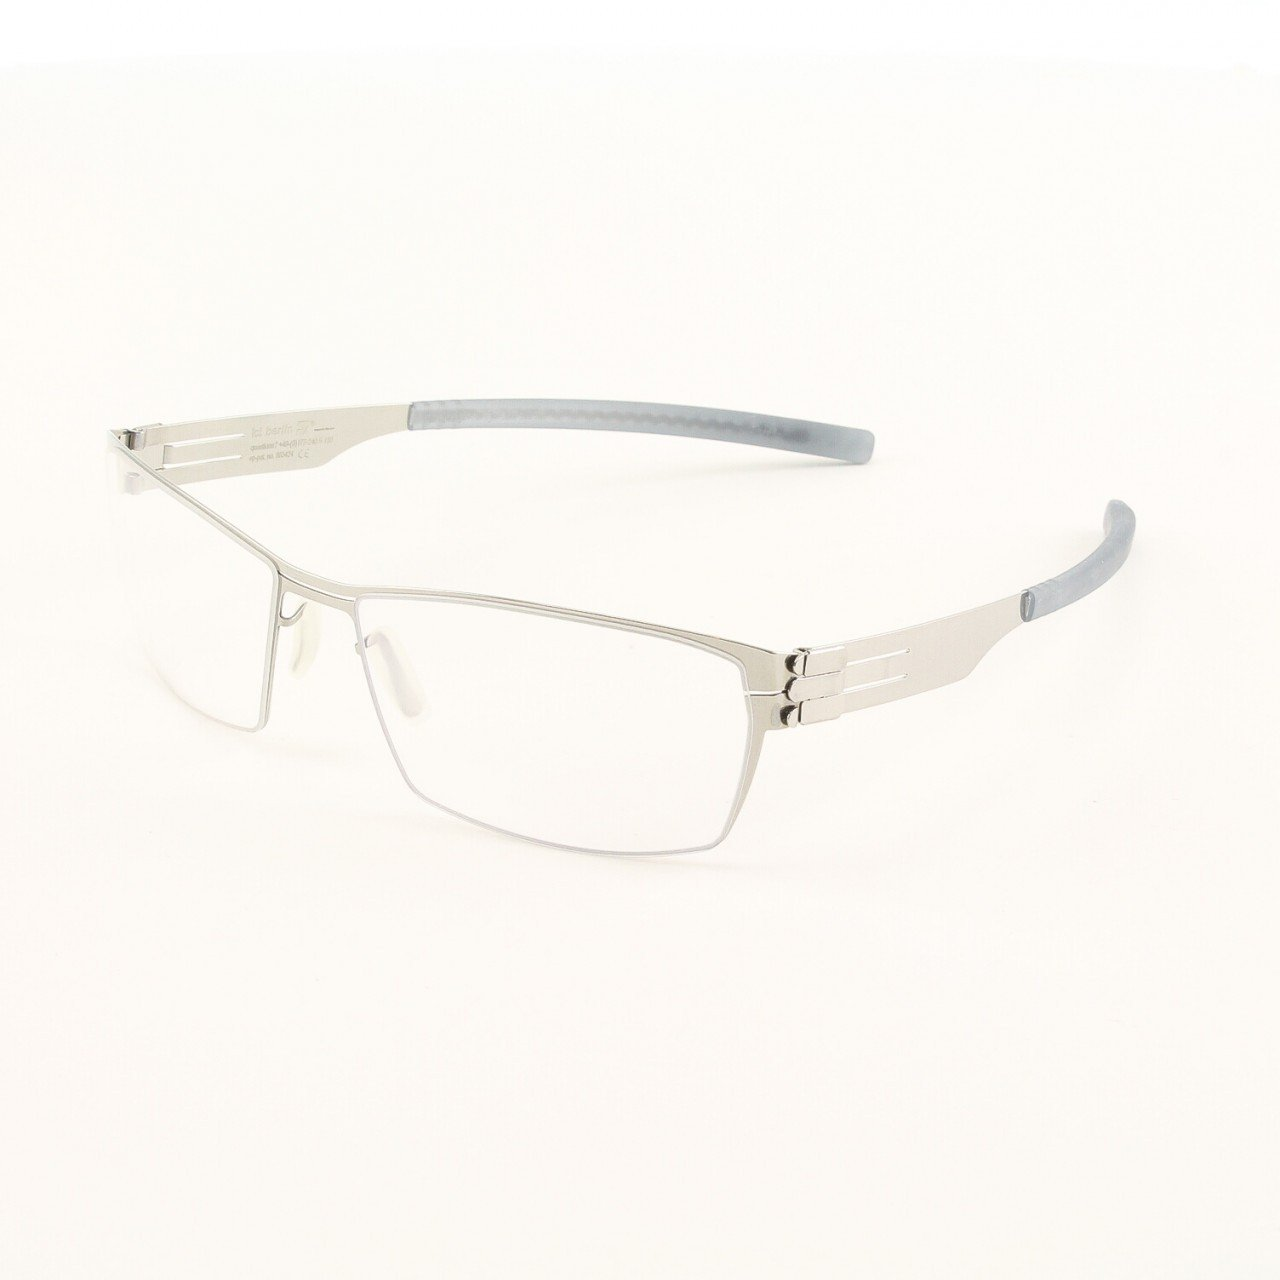 ic! Berlin Sanetsch Eyeglasses Col. Chrome with Clear Lenses